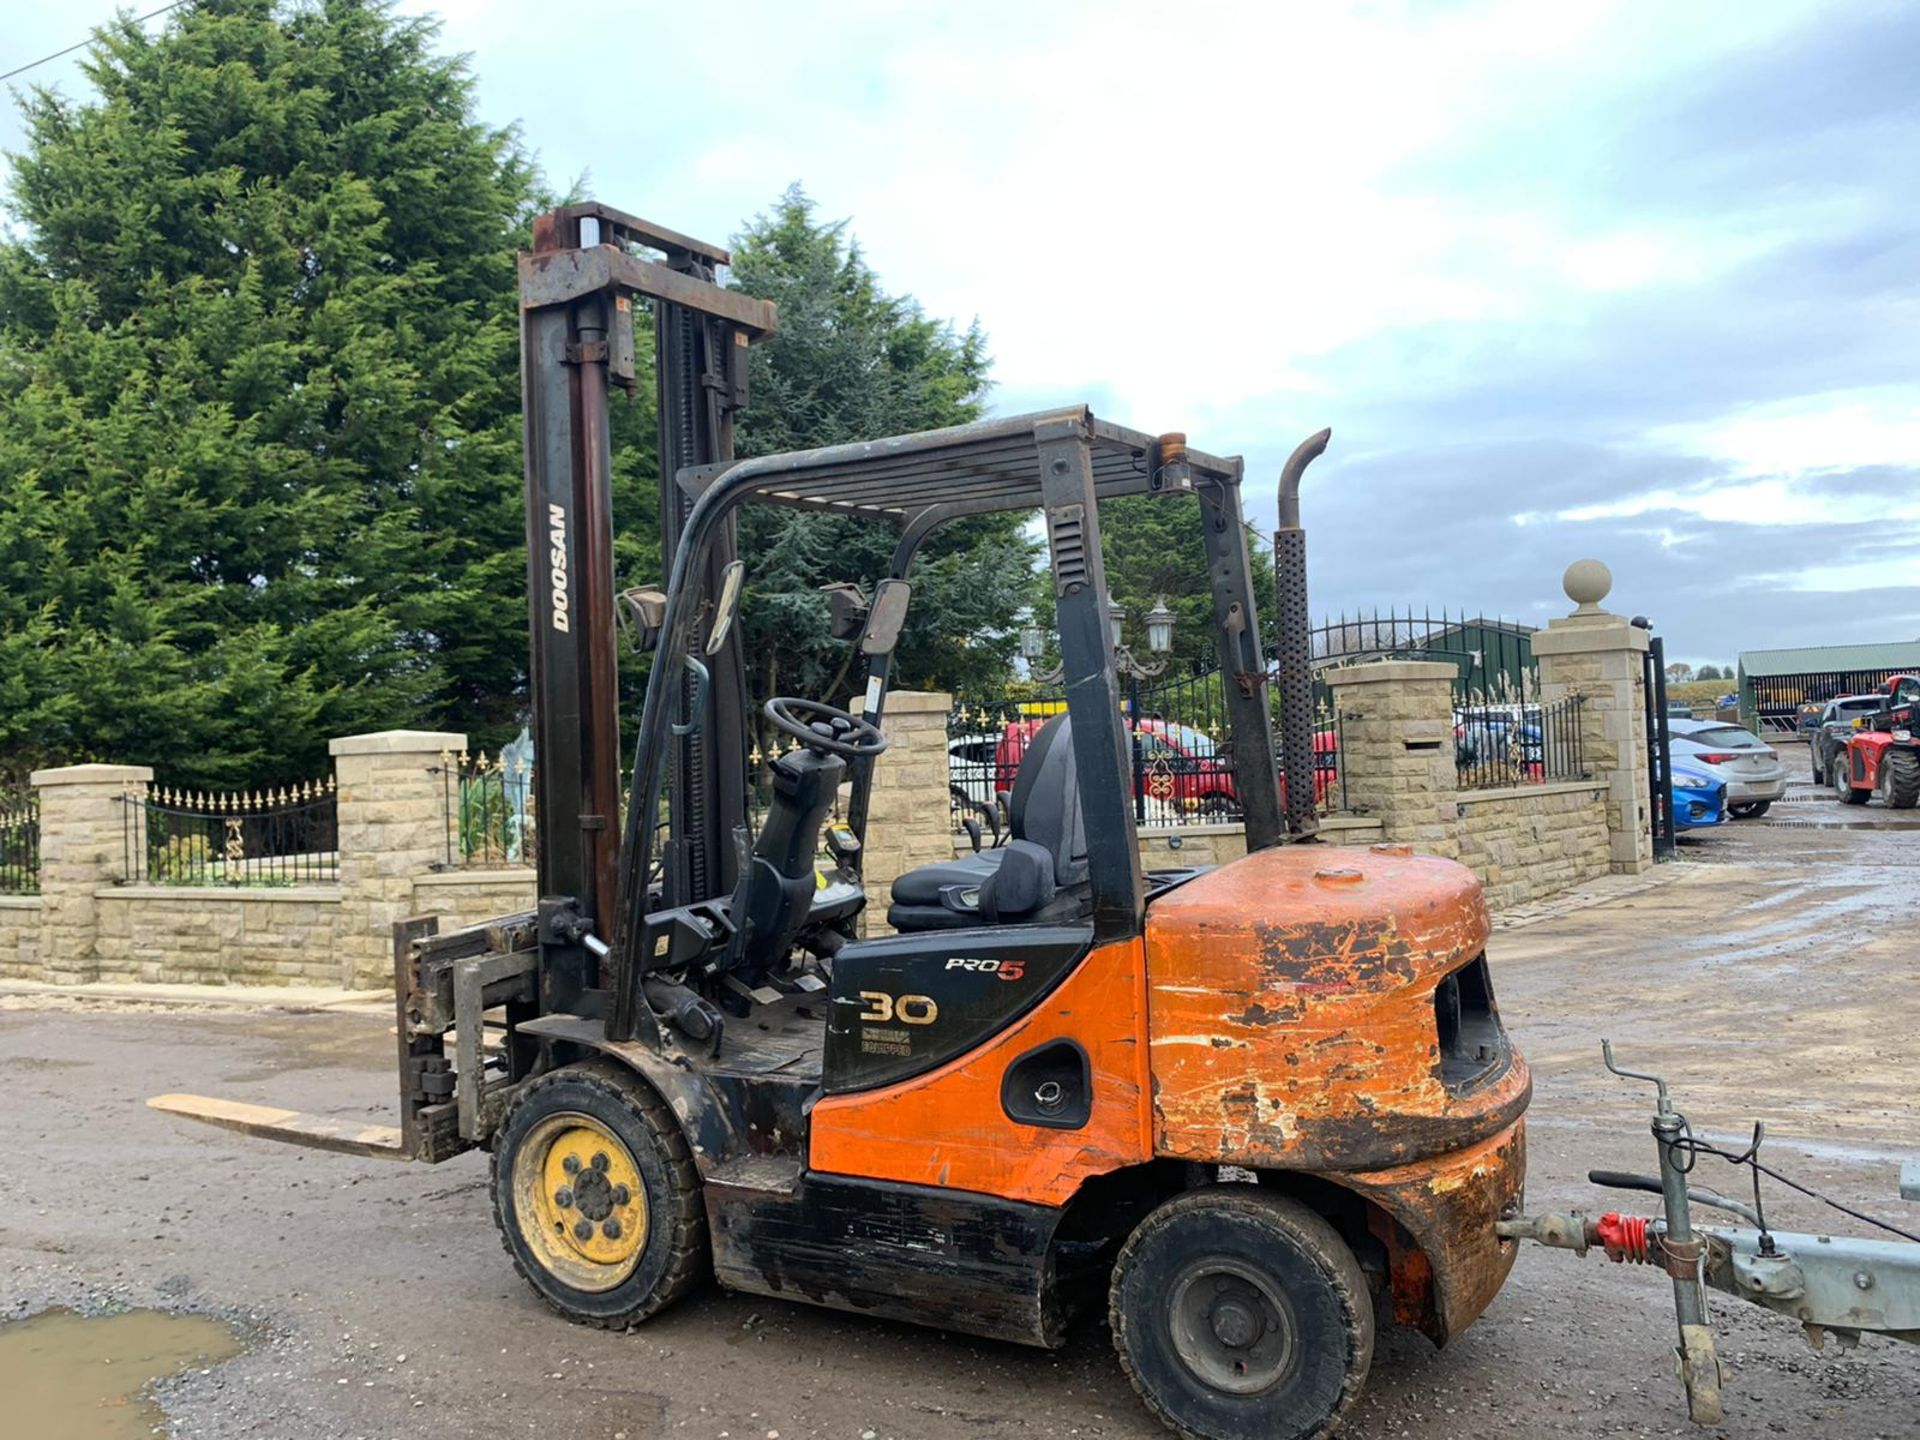 DOOSAN D30S-5 FORKLIFT, RUNS, DRIVES AND LIFTS, HYDRAULIC FORK POSITIONING, TRAILER NOT INCLUDED